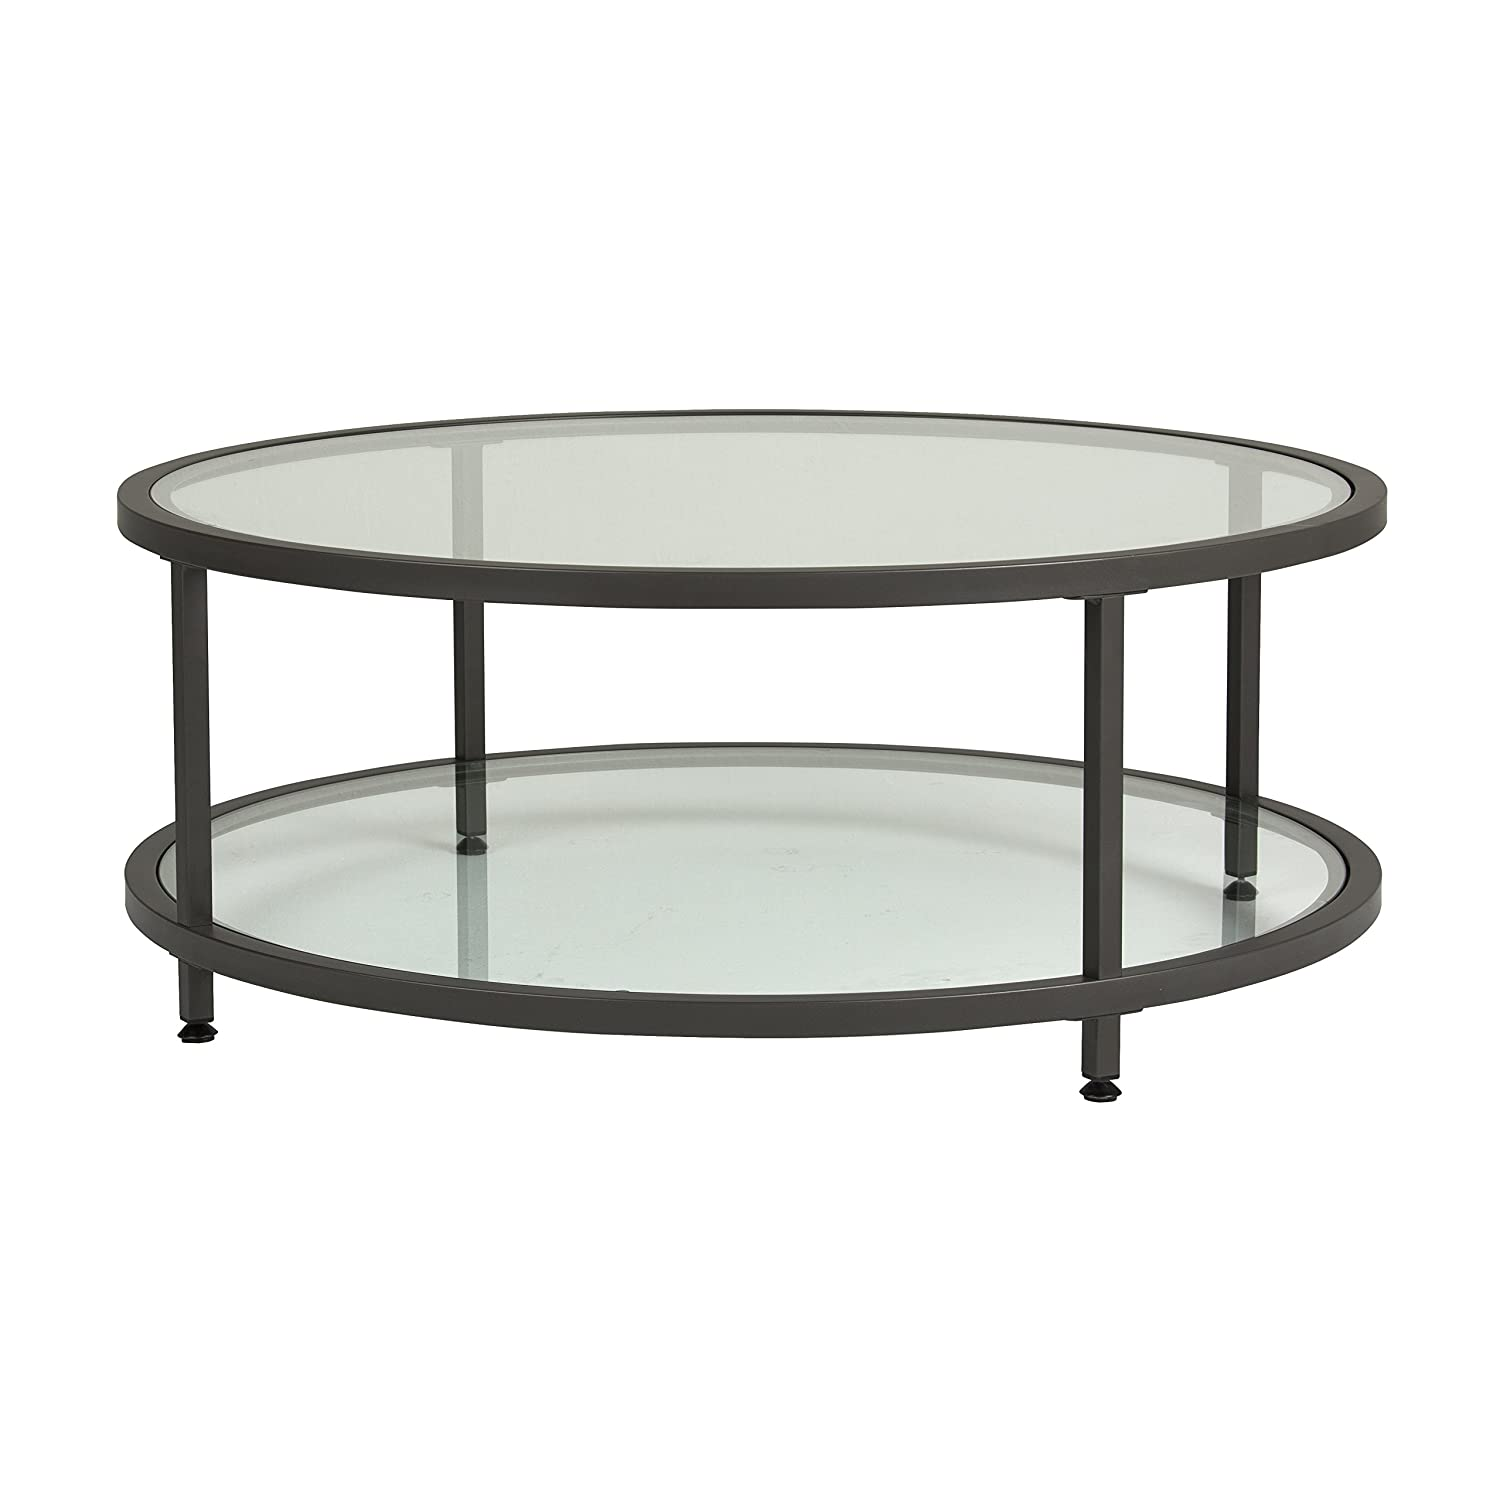 High Quality Amazon.com: Studio Designs Home 71003.0 Camber Round Coffee Table In Pewter  With Clear Glass: Kitchen U0026 Dining